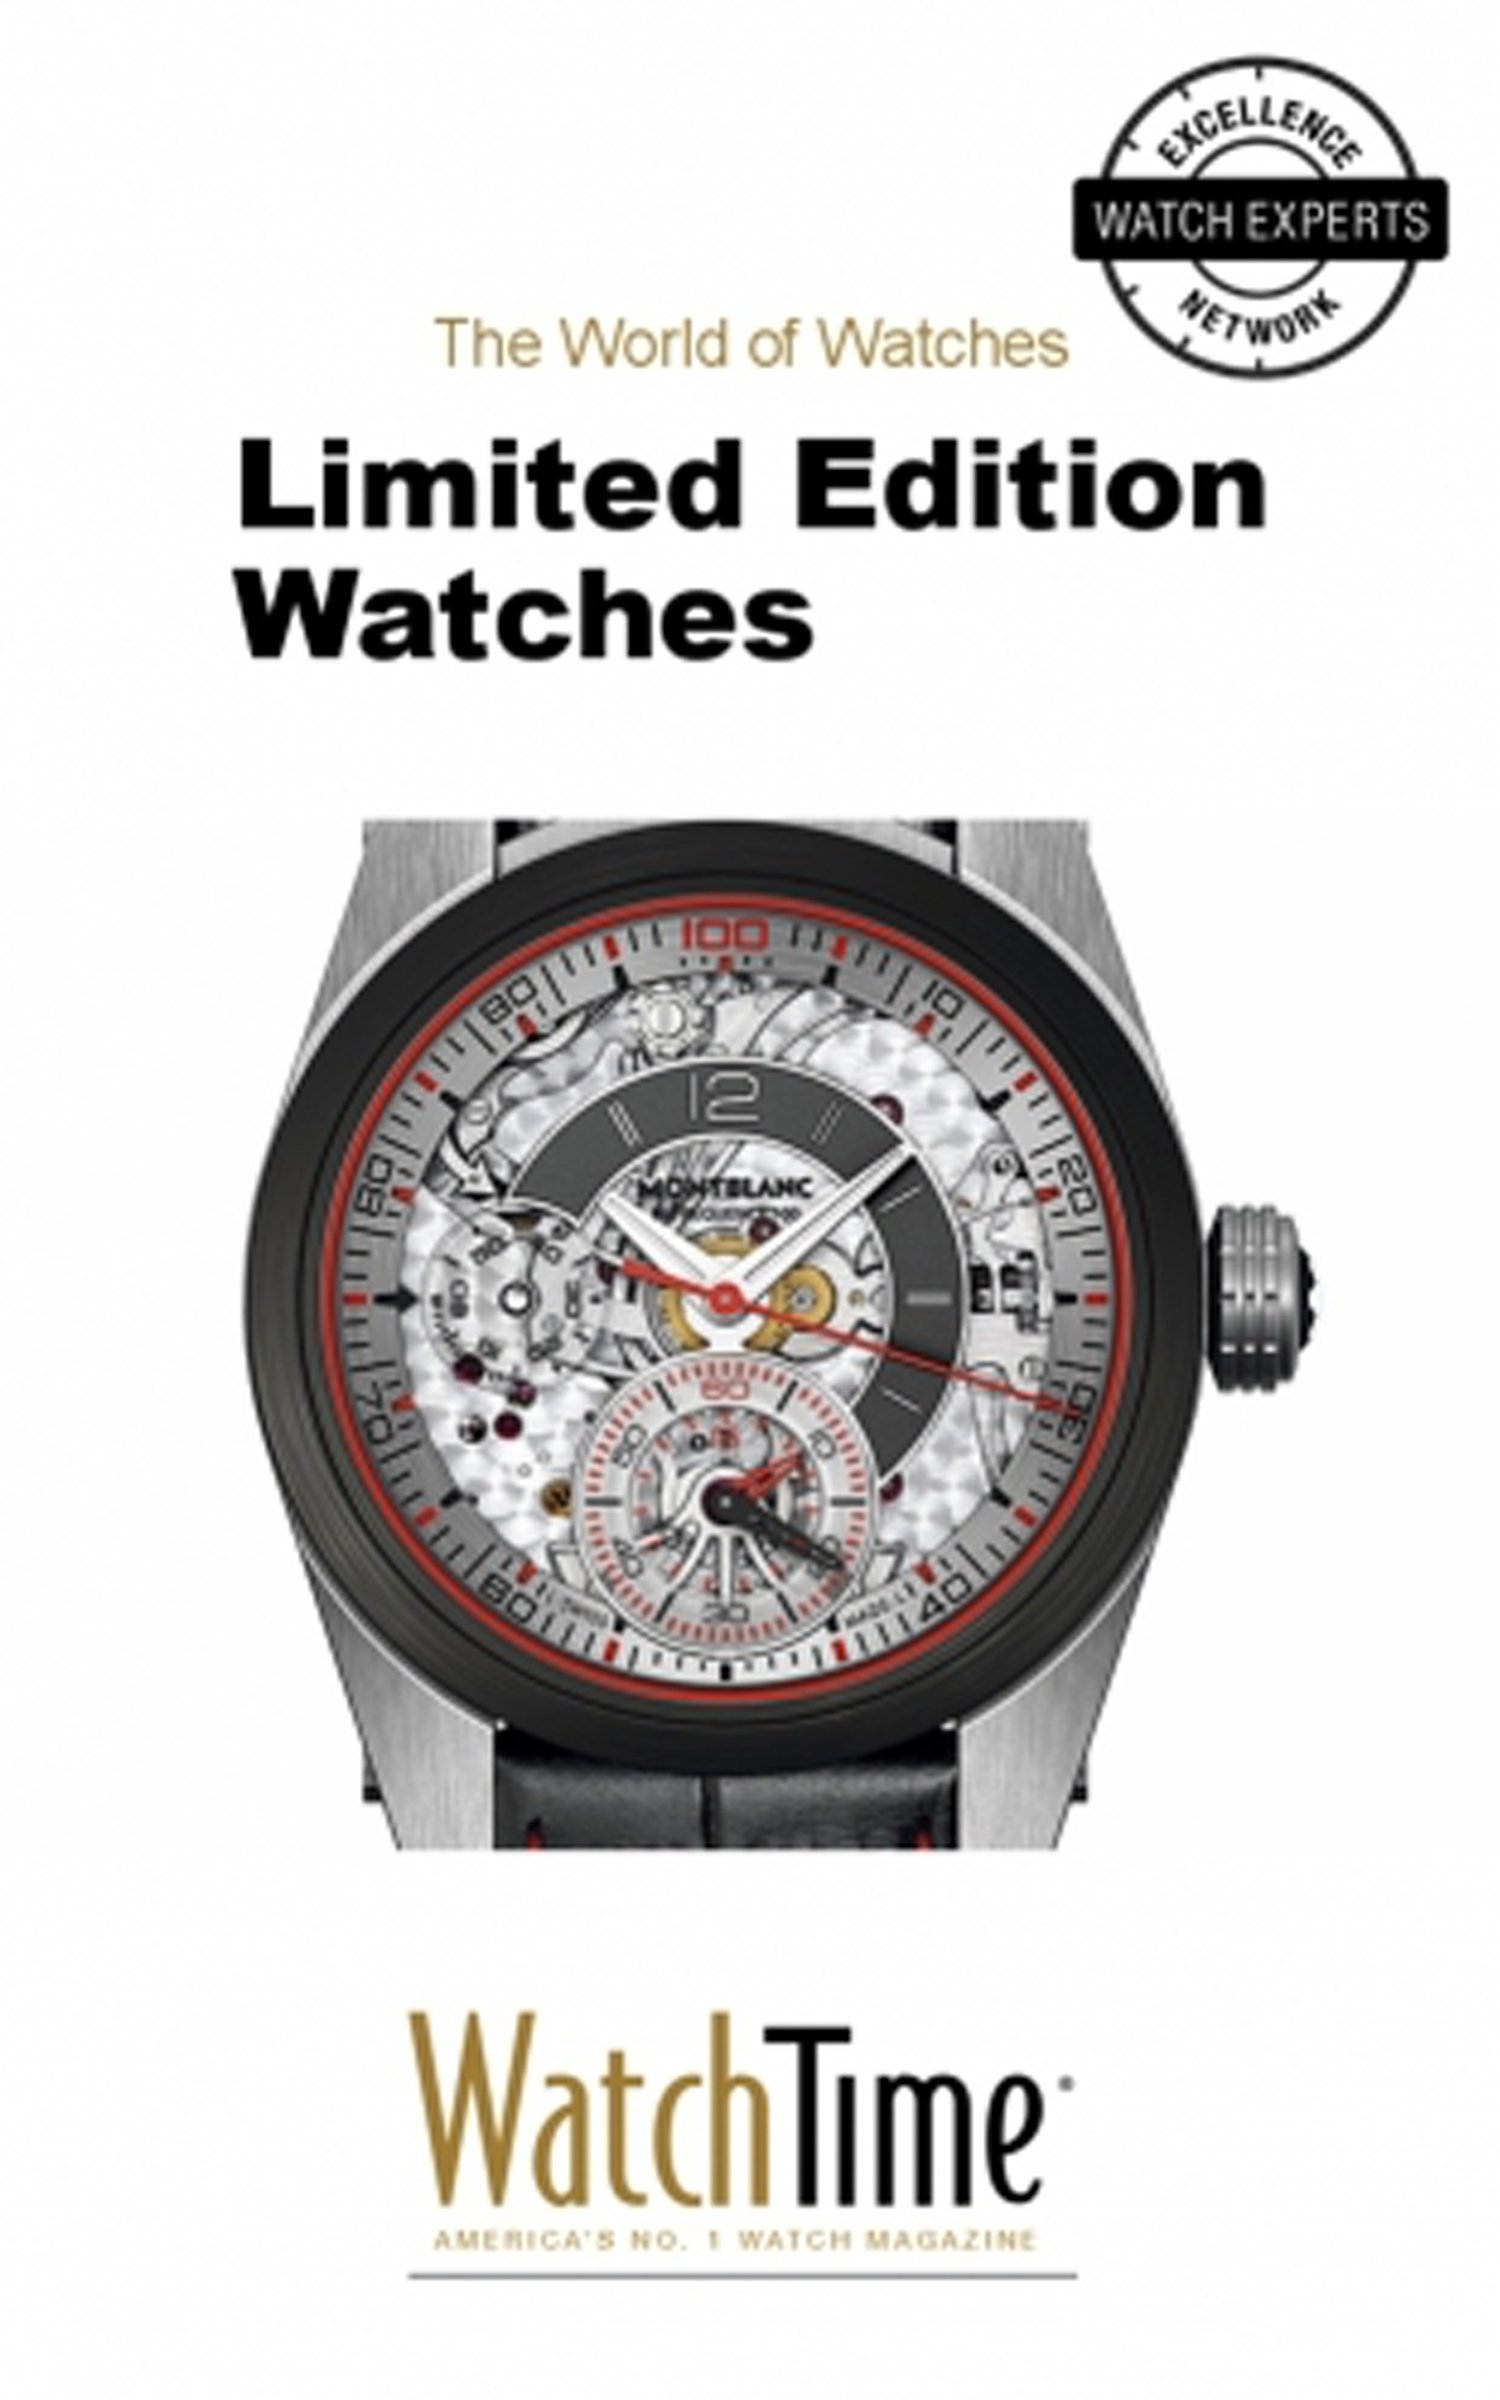 Limited Edition Watches: Guidebook for luxury watches (English Edition)